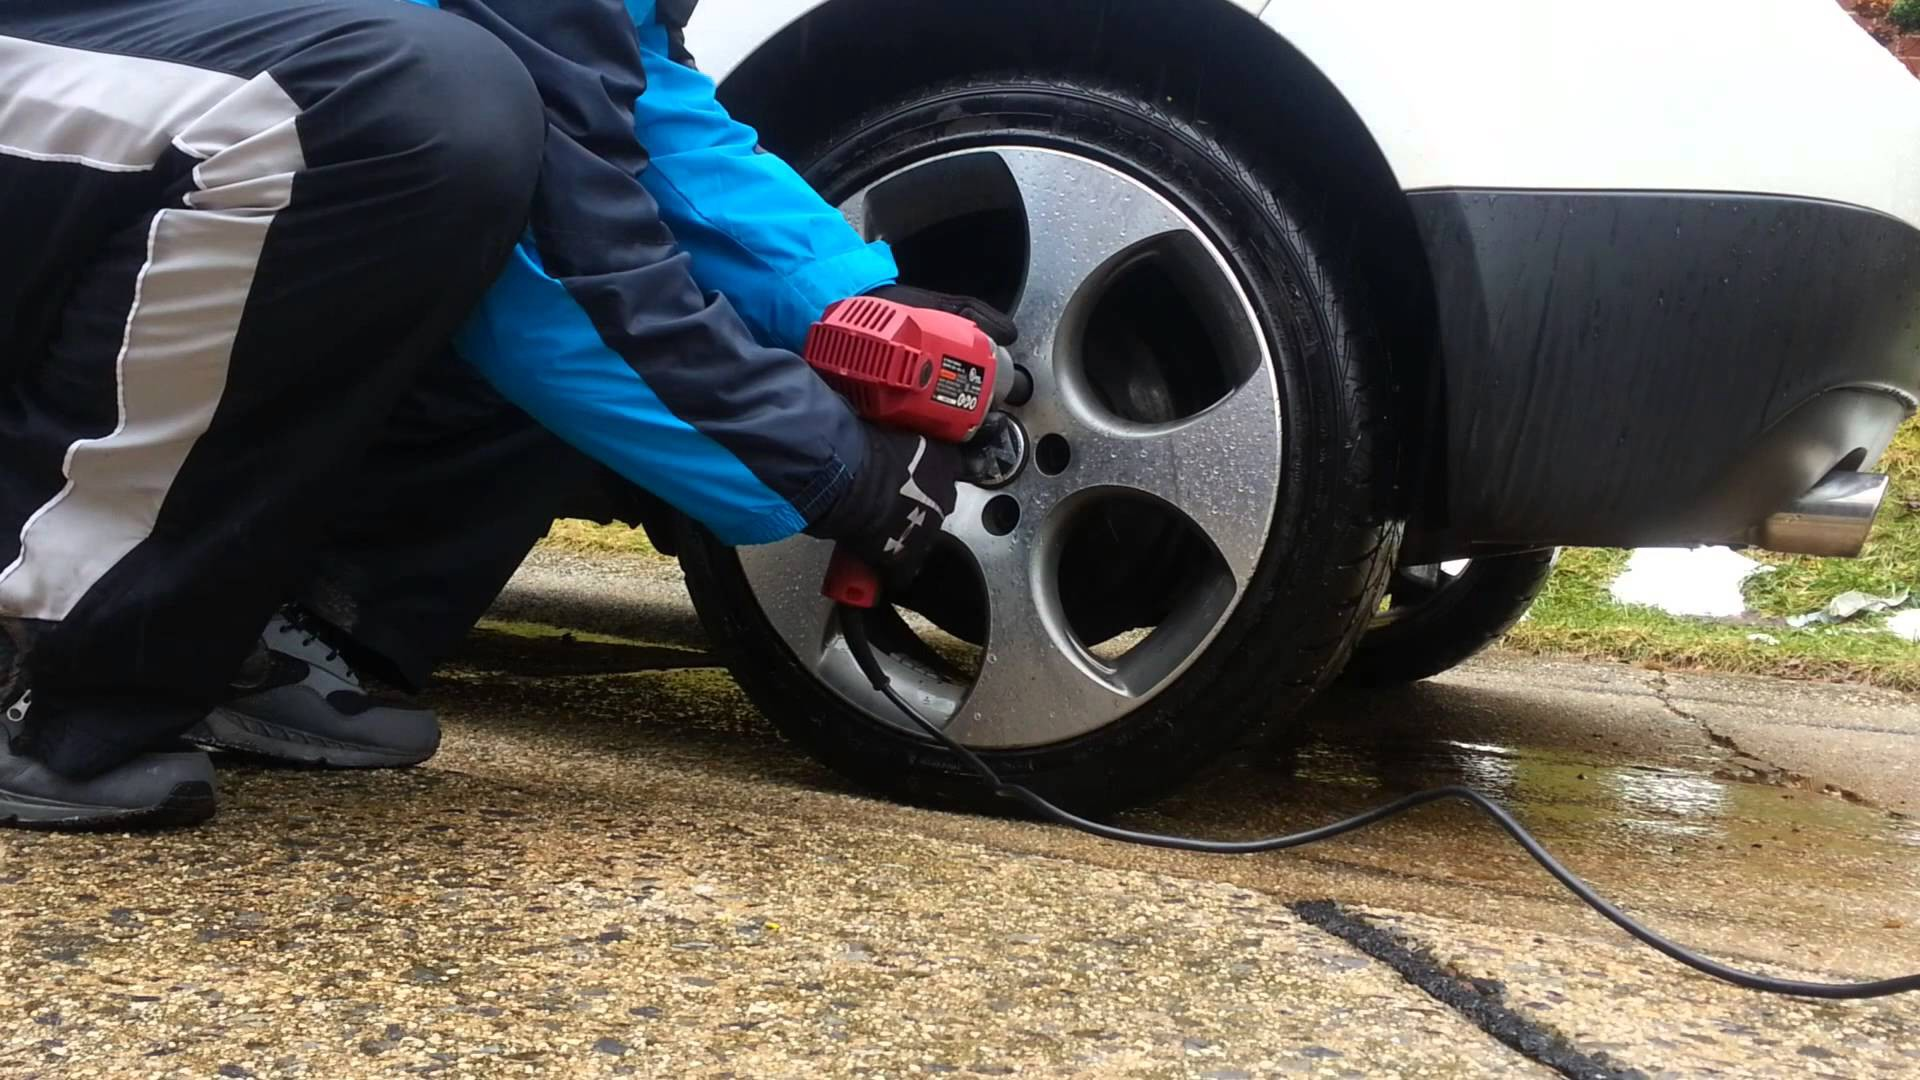 5 Best Portable Impact Wrench 2018 Er S Guide In Your Car Without Having To Worry About It Being Charged